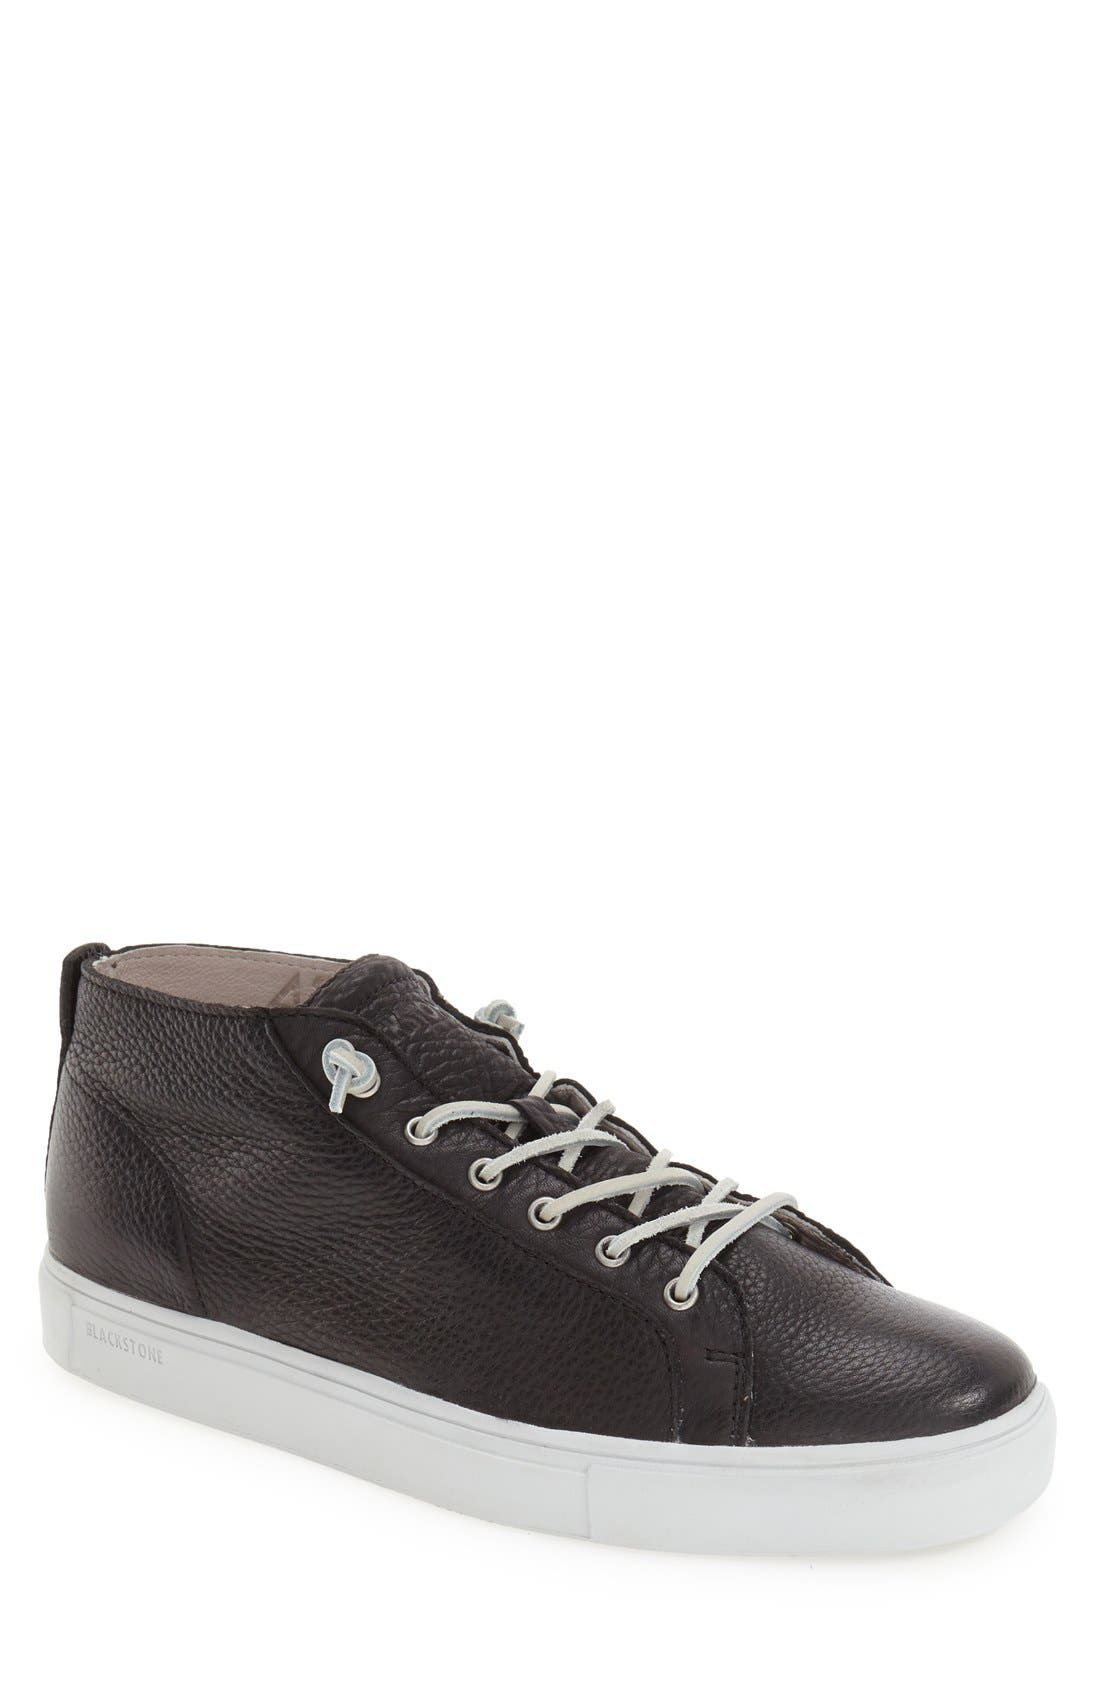 Blackstone 'LM11' Sneaker (Men)